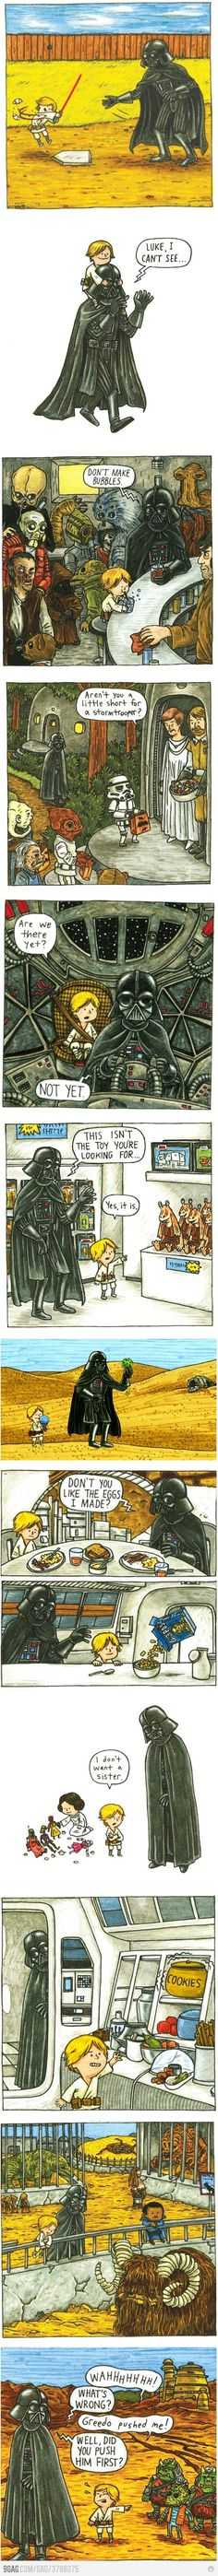 If Darth Vader had been a good father...